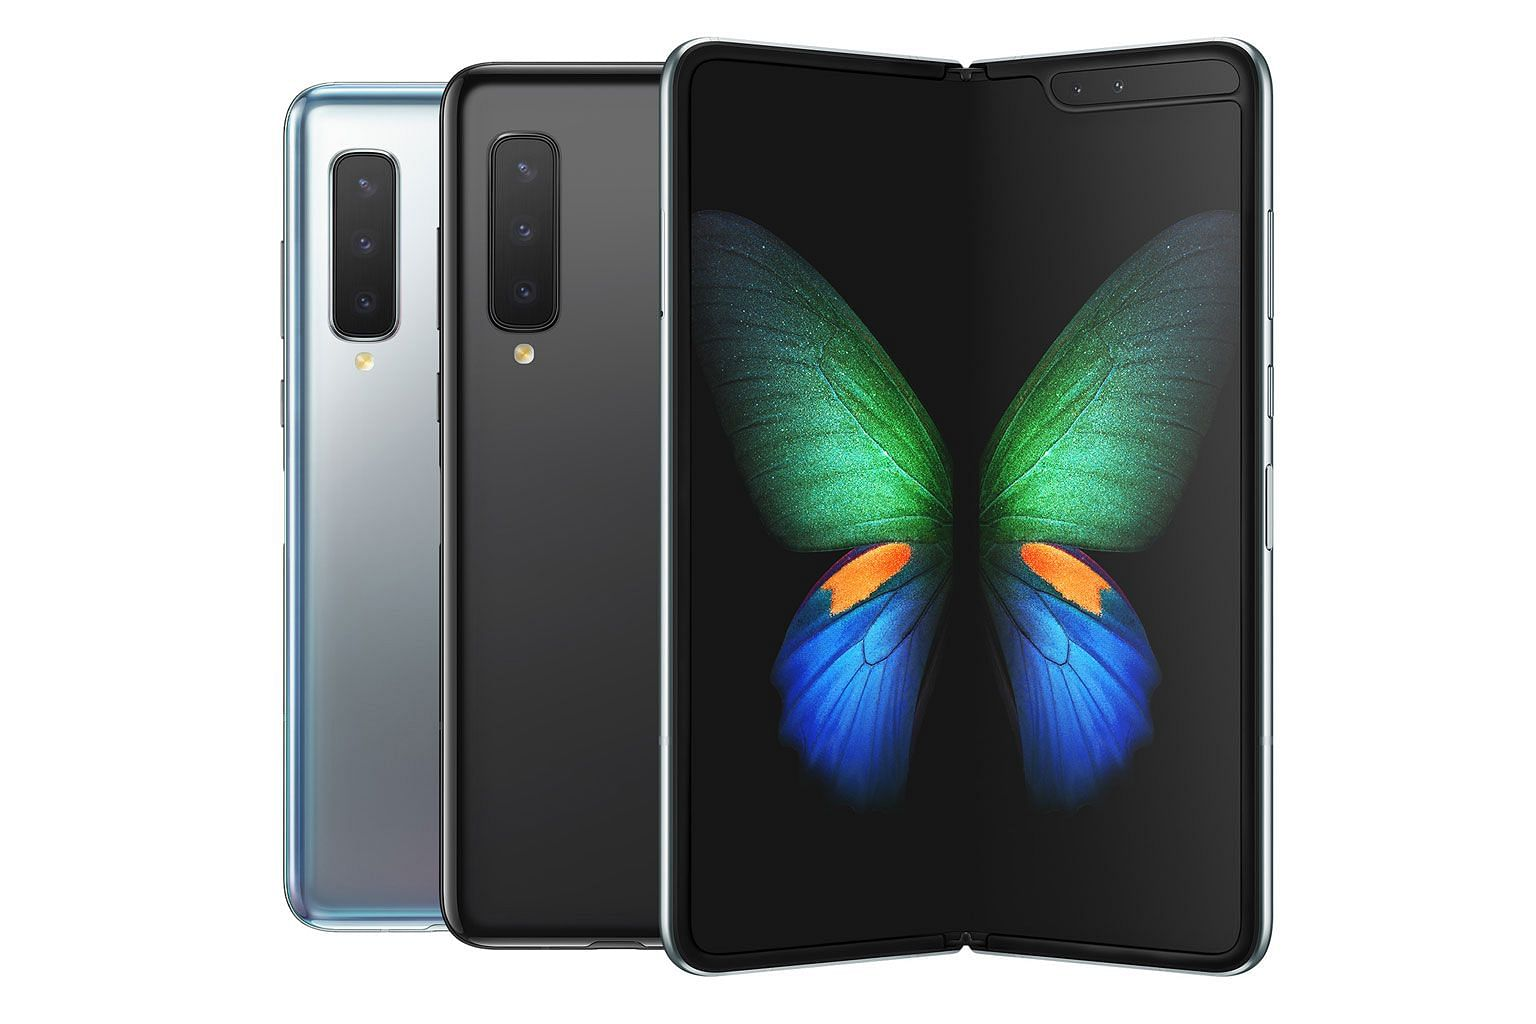 Samsung has fixed some of the problems plaguing the original version of the Galaxy Fold smartphone.